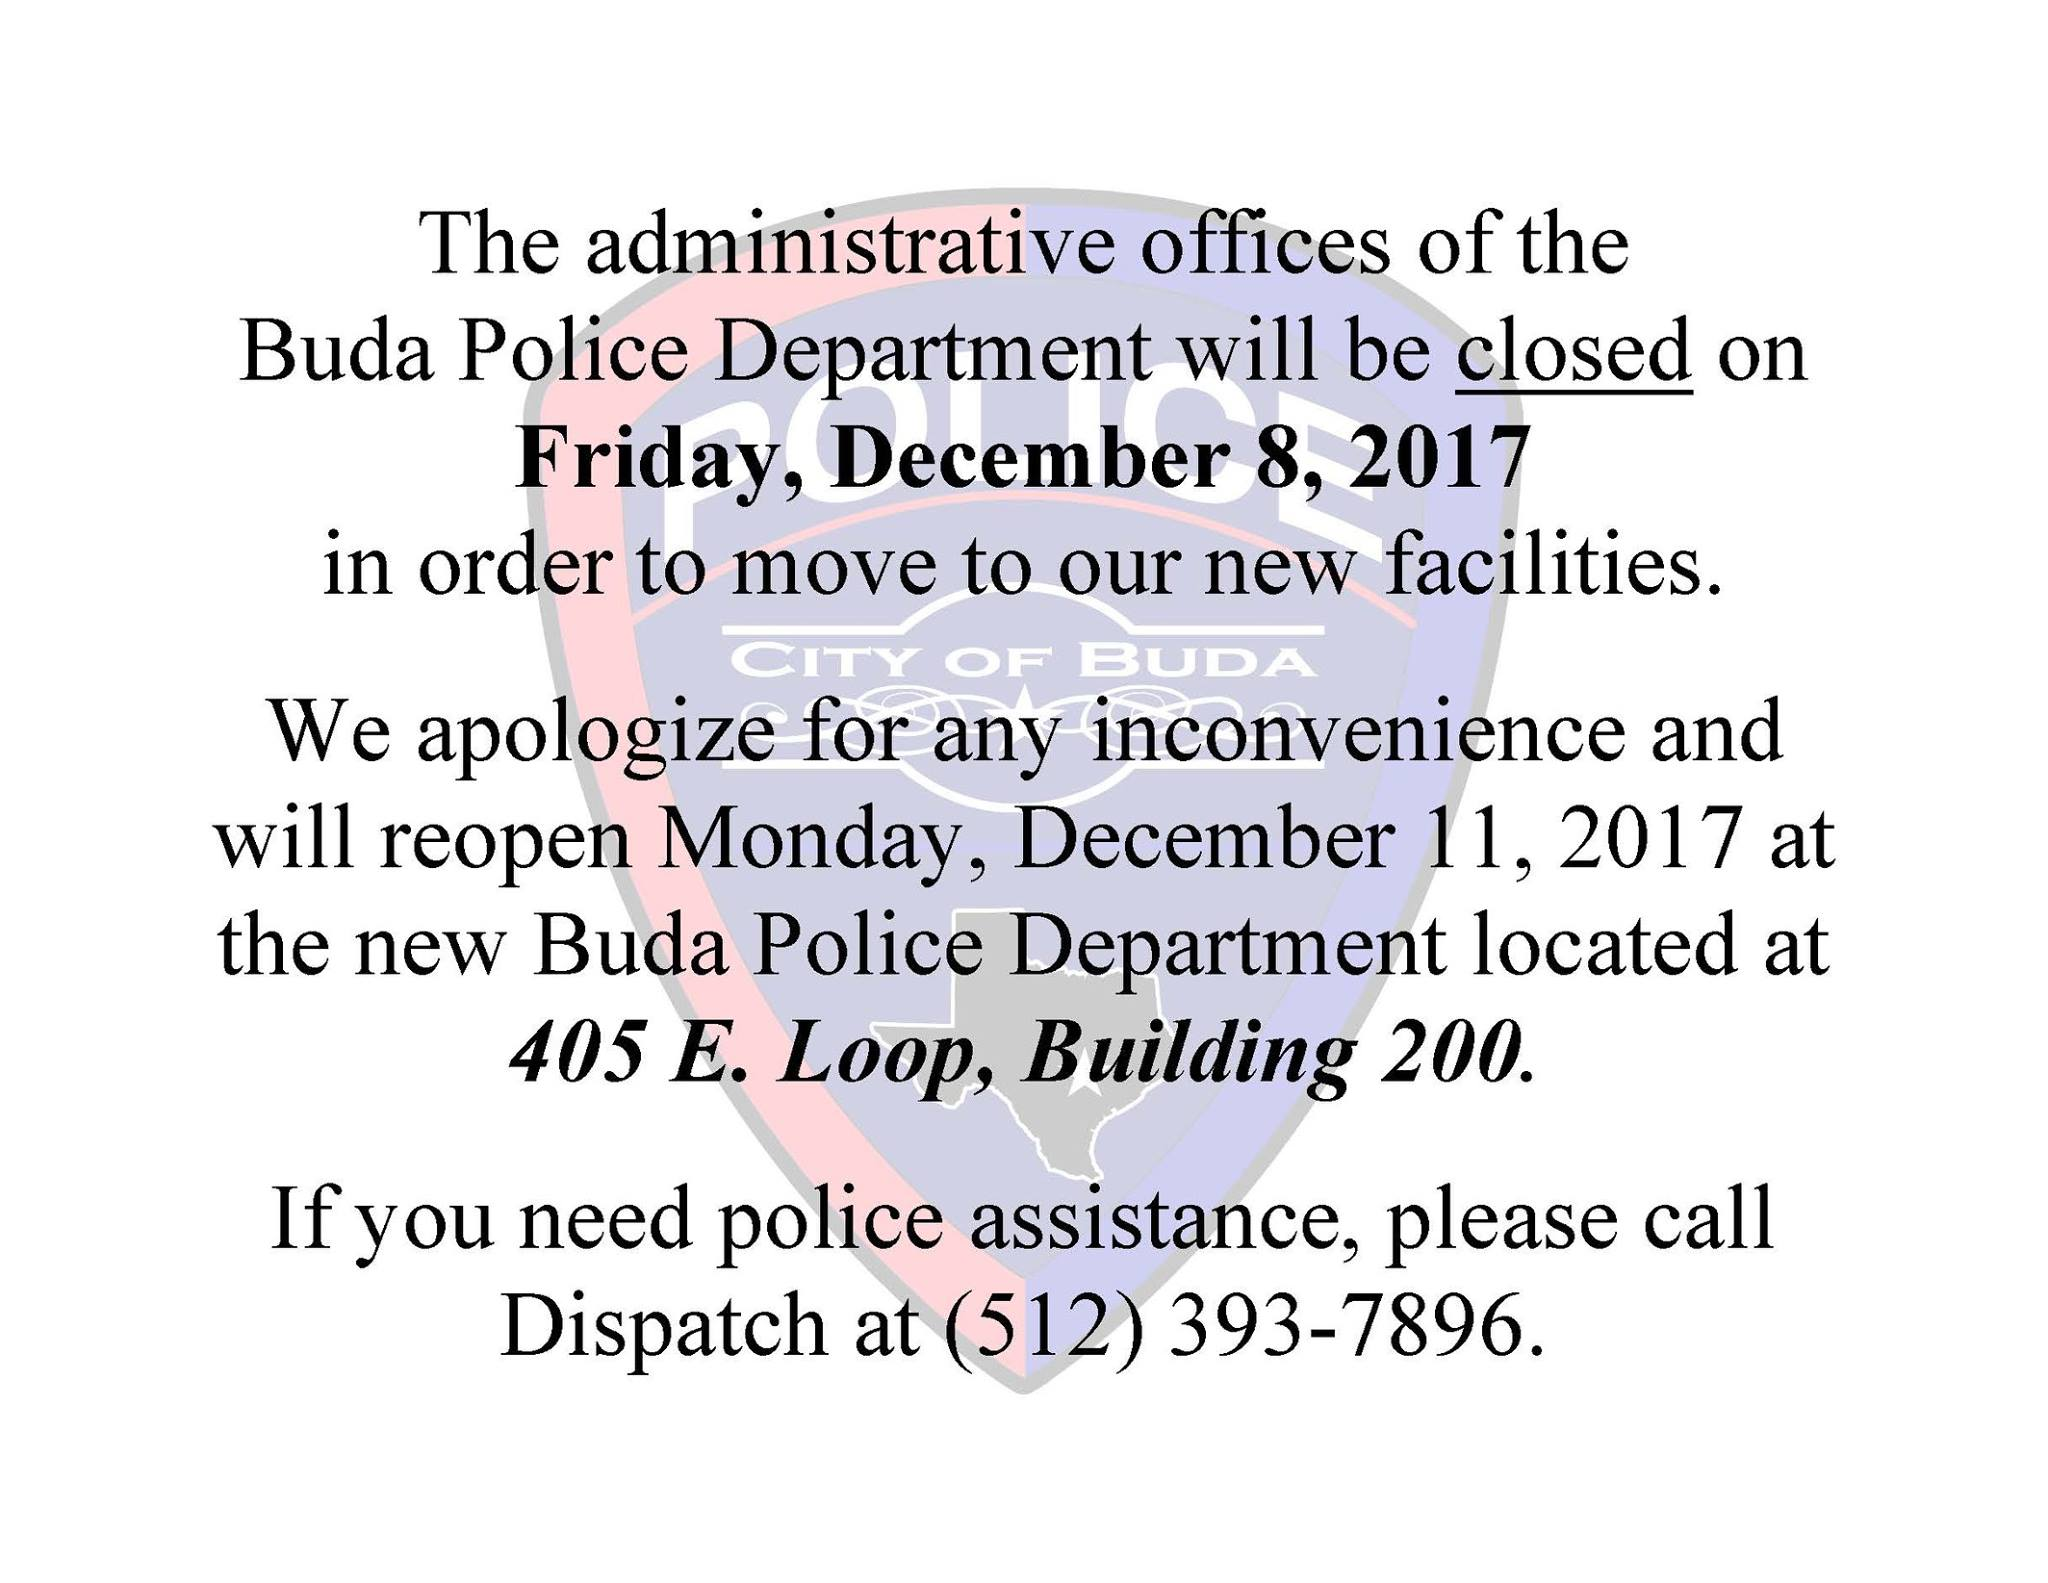 Police Dept. Closed